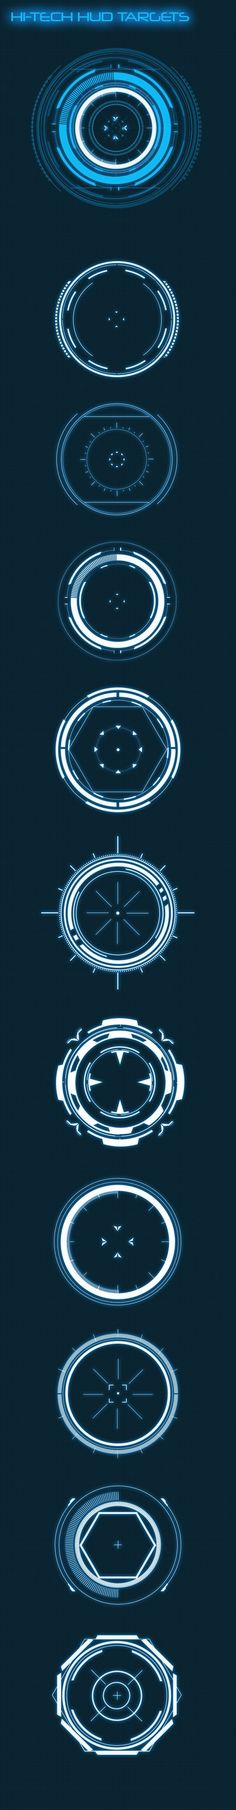 Buy Hi-Tech HUD Targets (Custom Shapes) by anchor_point_heshan on GraphicRiver. 10 Hi-Tech target circles set (Custom shapes) This file contains 10 Hi-Tech target circles in a custom shapes file, Y. Ios App Design, Ui Design, Game Design, Photoshop Shapes, Photoshop Design, Adobe Photoshop, Latest Technology Gadgets, Business Poster, Ui Elements